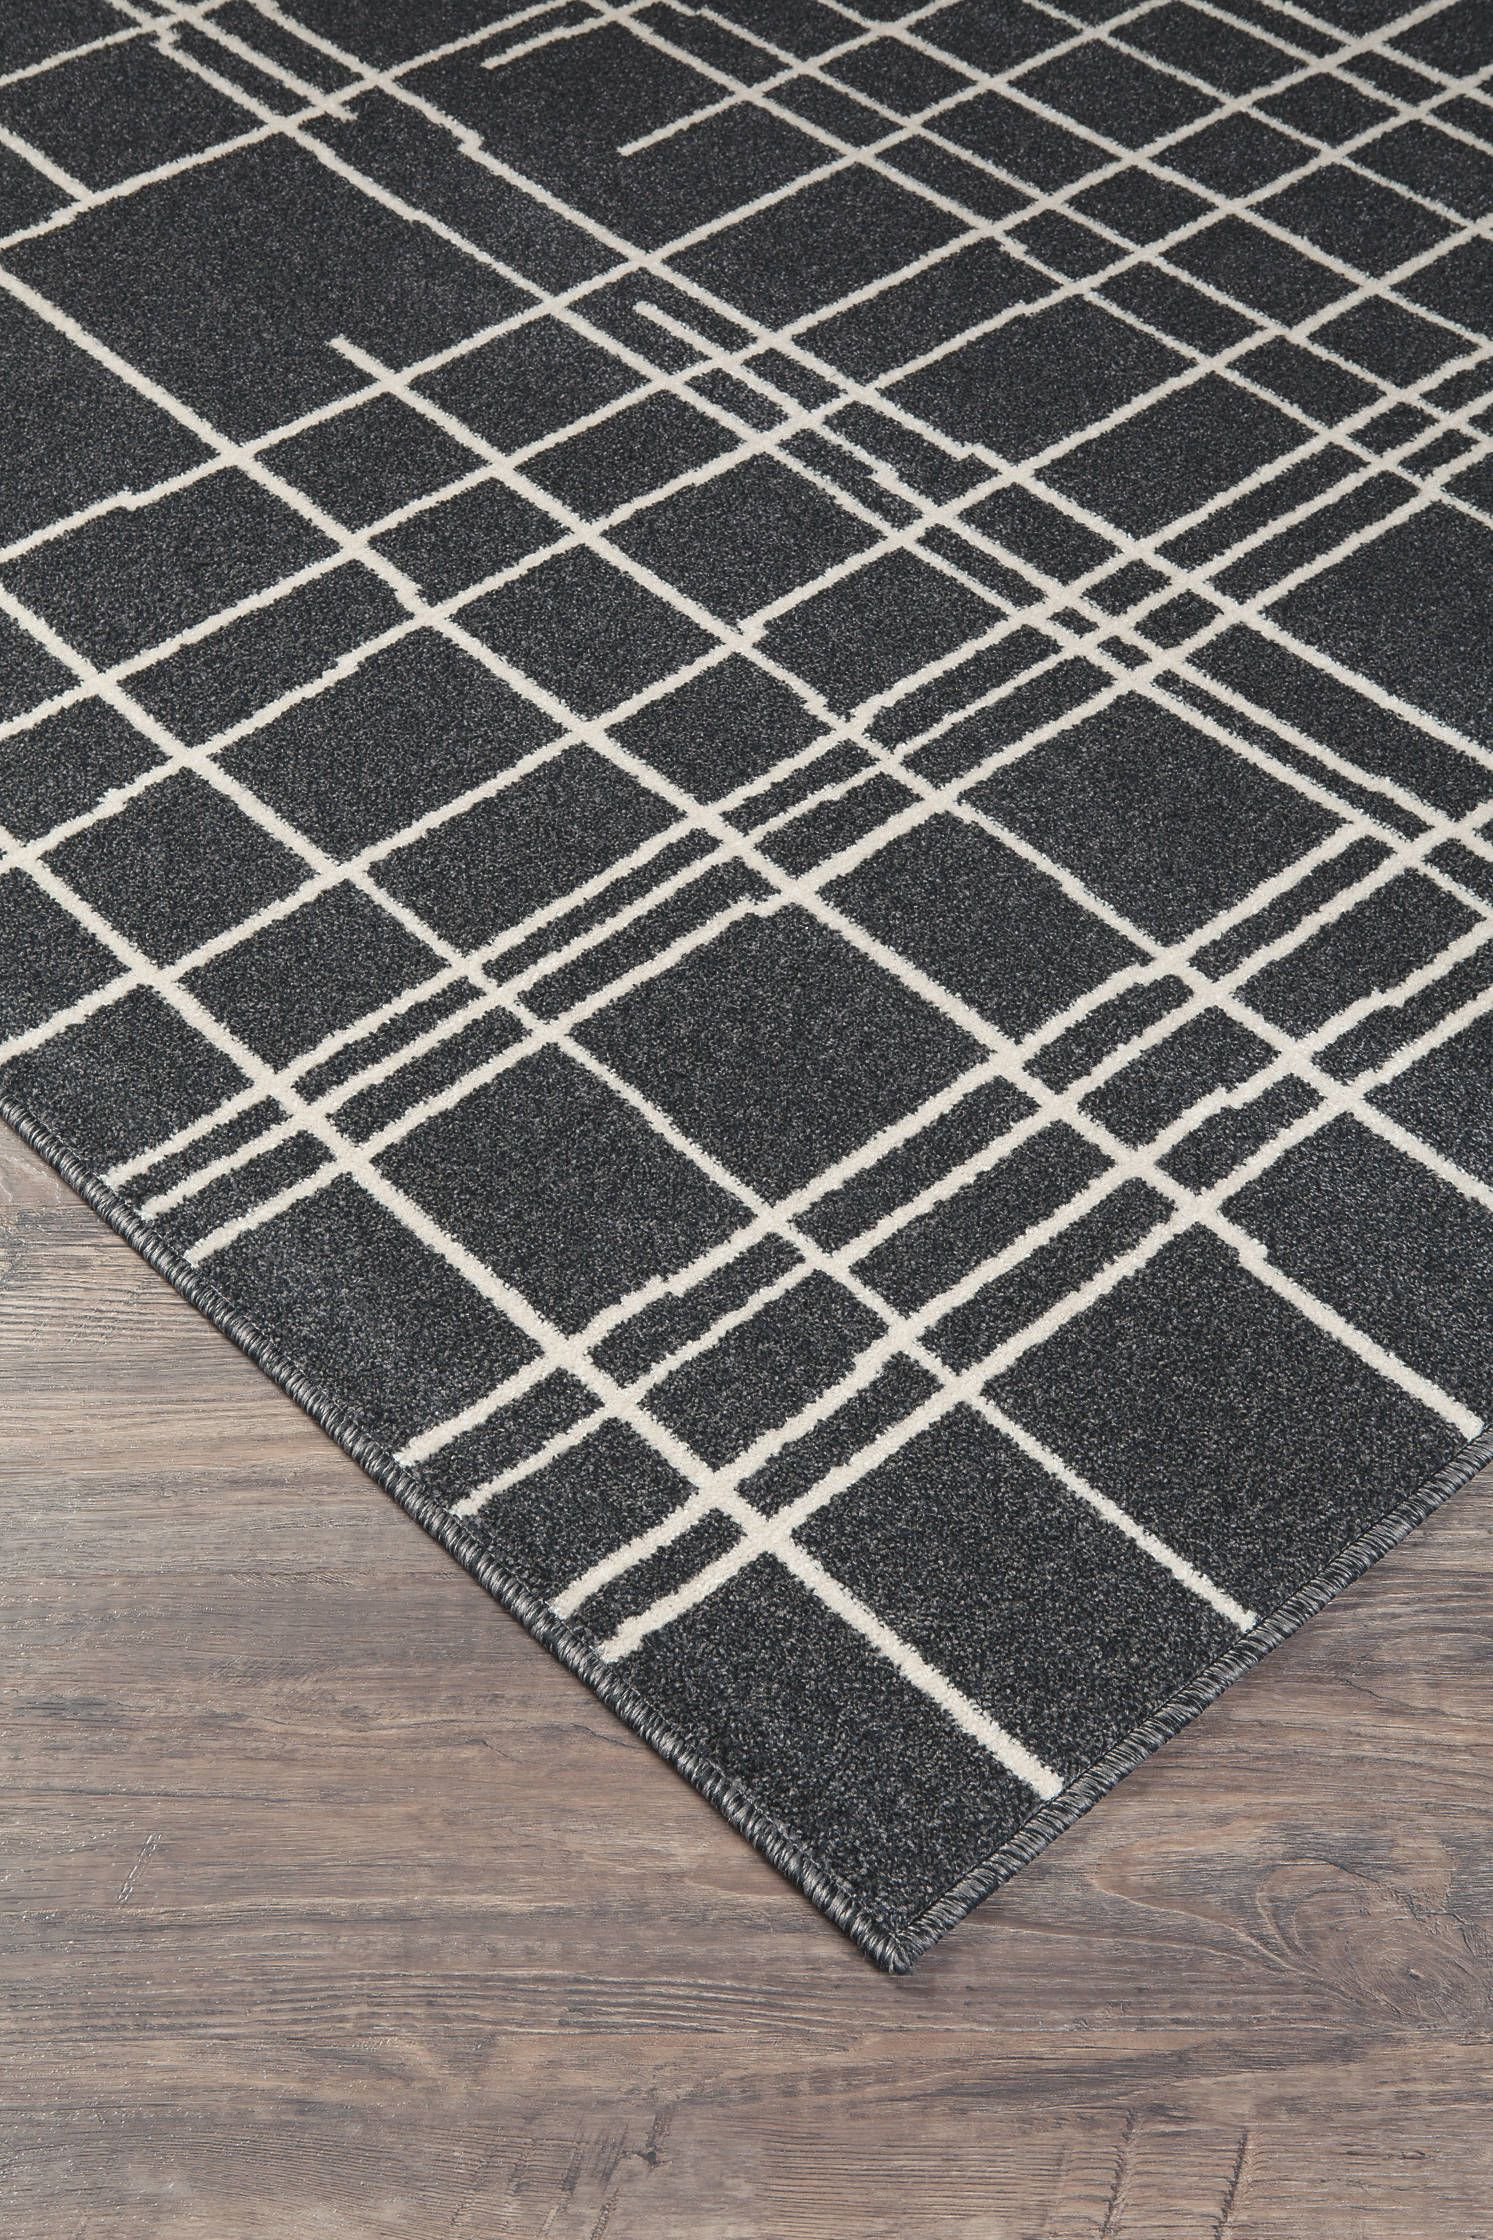 Jai Black White Large Rug This Rug S Abstract Pattern Is Certainly A Sight For Sore Eyes Spindled Cross Hat Signature Design By Ashley Signature Design Rugs